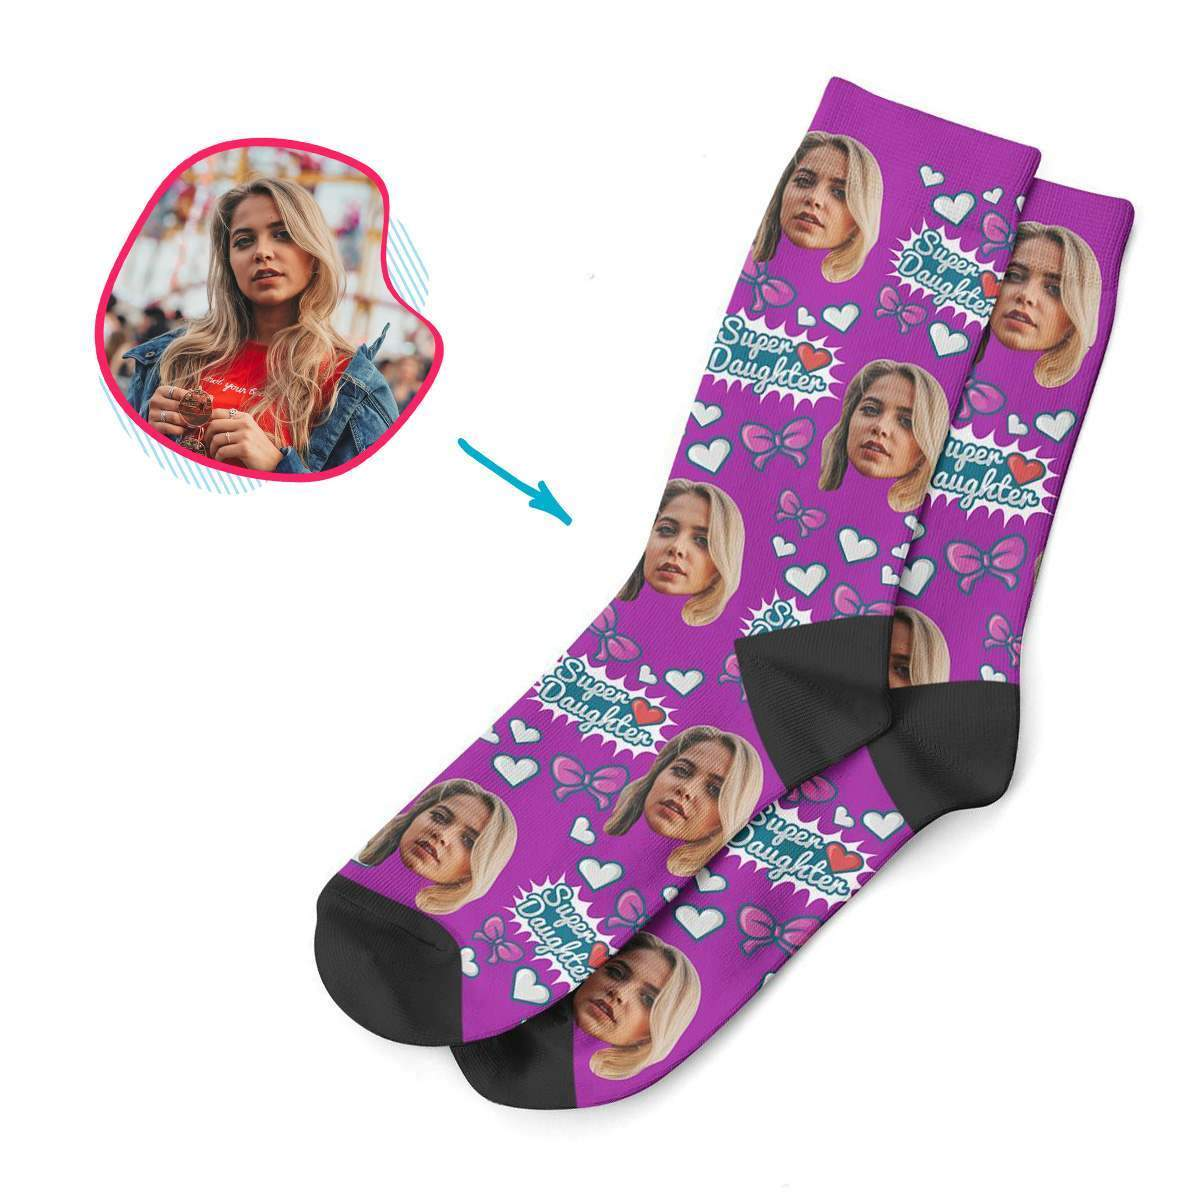 purple Super Daughter socks personalized with photo of face printed on them